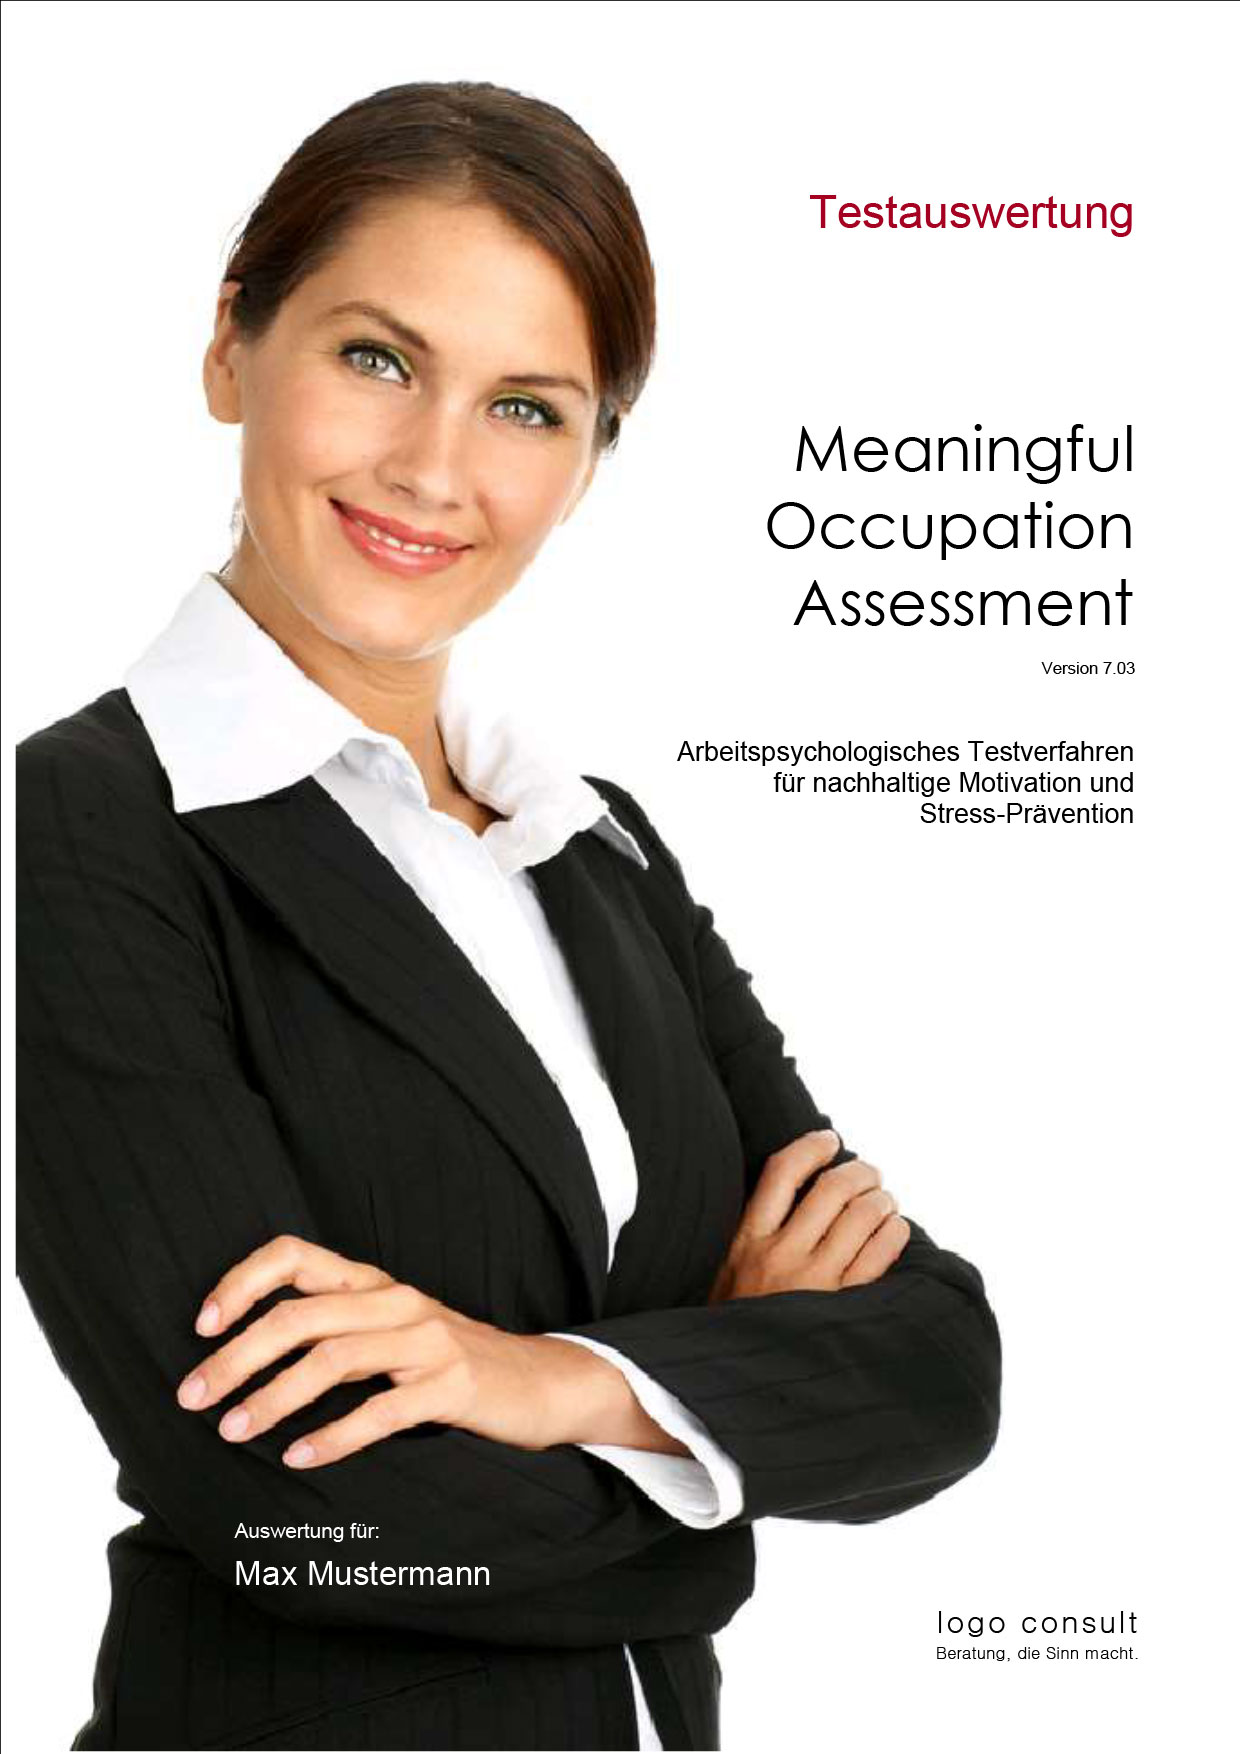 MOA 7.03 – Meaningful Occupation Assessment